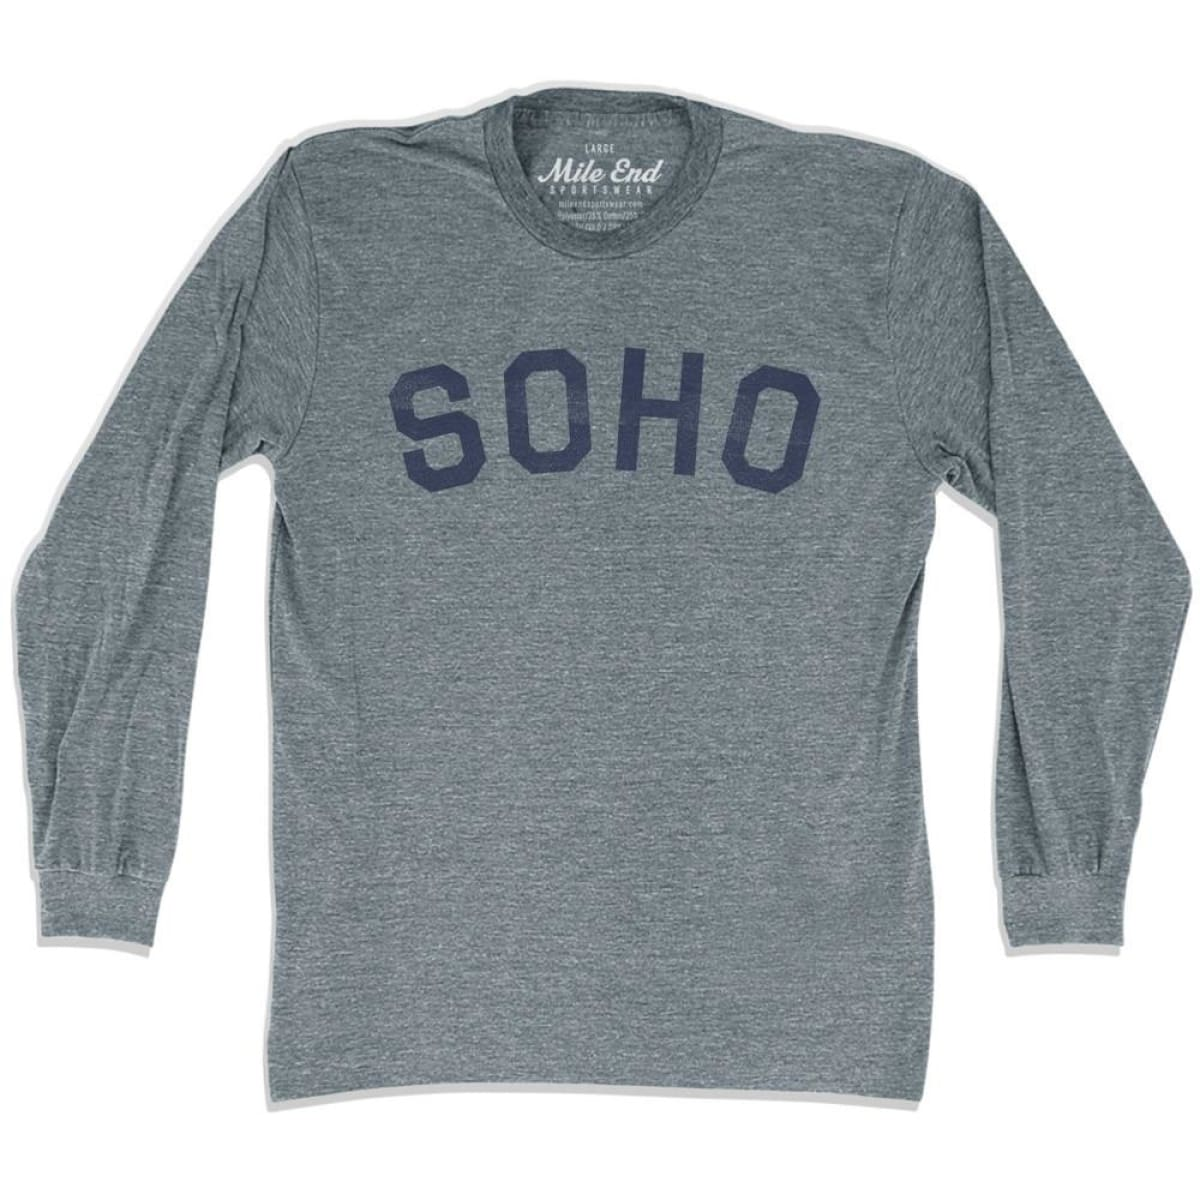 Soho City Vintage Long Sleeve T-Shirt - Athletic Grey / Adult X-Small - Mile End City